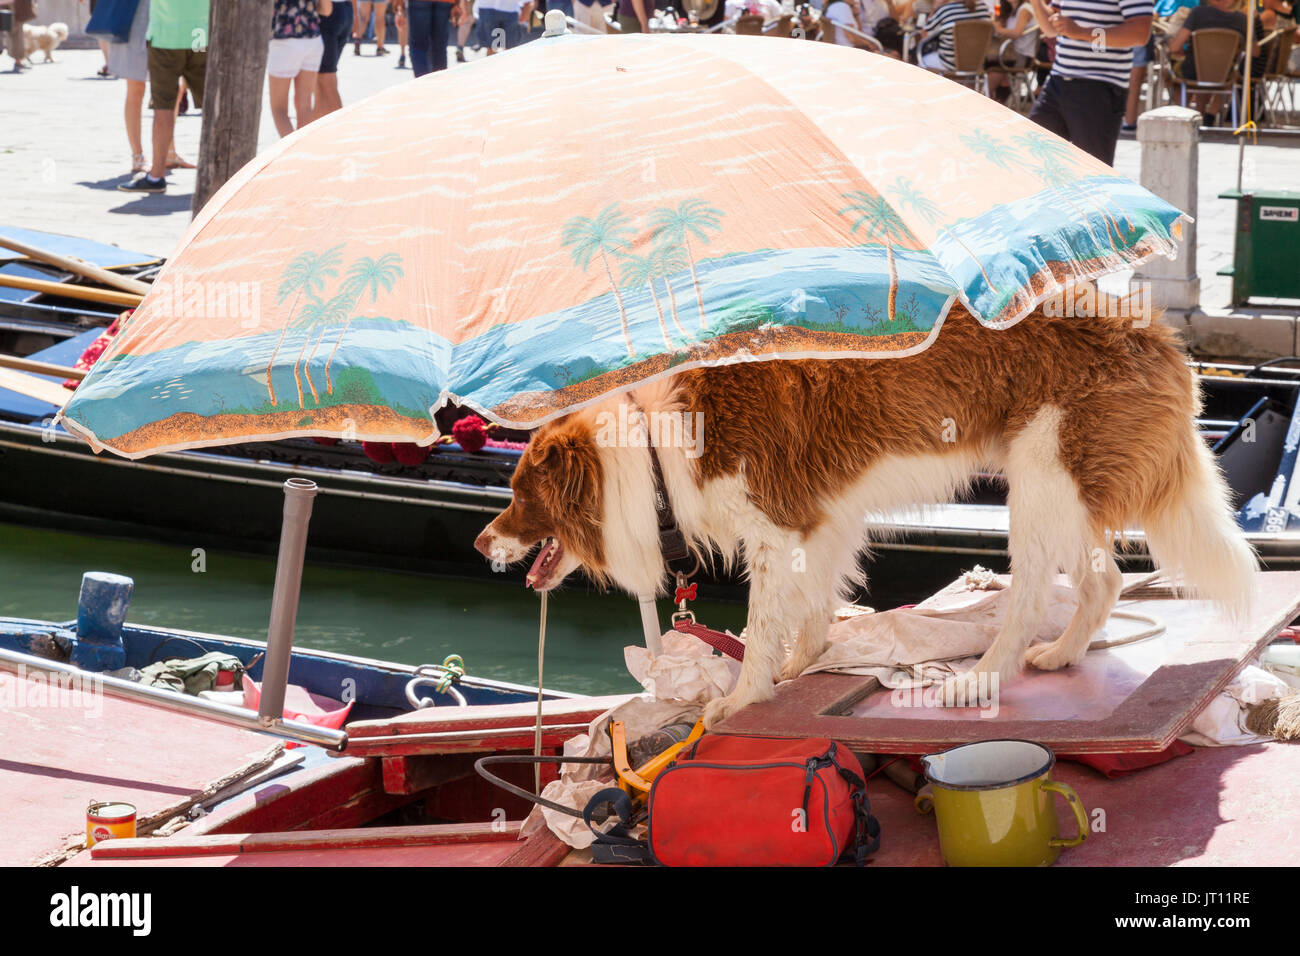 Venice Italy Heatwave. 7 August 2017. Dog sheltering under its own umbrella on a working boat in Venice, Italy during the extreme weather conditions and summer heat of the August 2017 heatwave in the canal alongside Campo San Barnaba, Dorsoduro, with a jug of cool water alongside it. Gondolas and legs of the crowd of tourists in the Campo visible behind as it stands waiting expectantly for the owner to return. - Stock Image